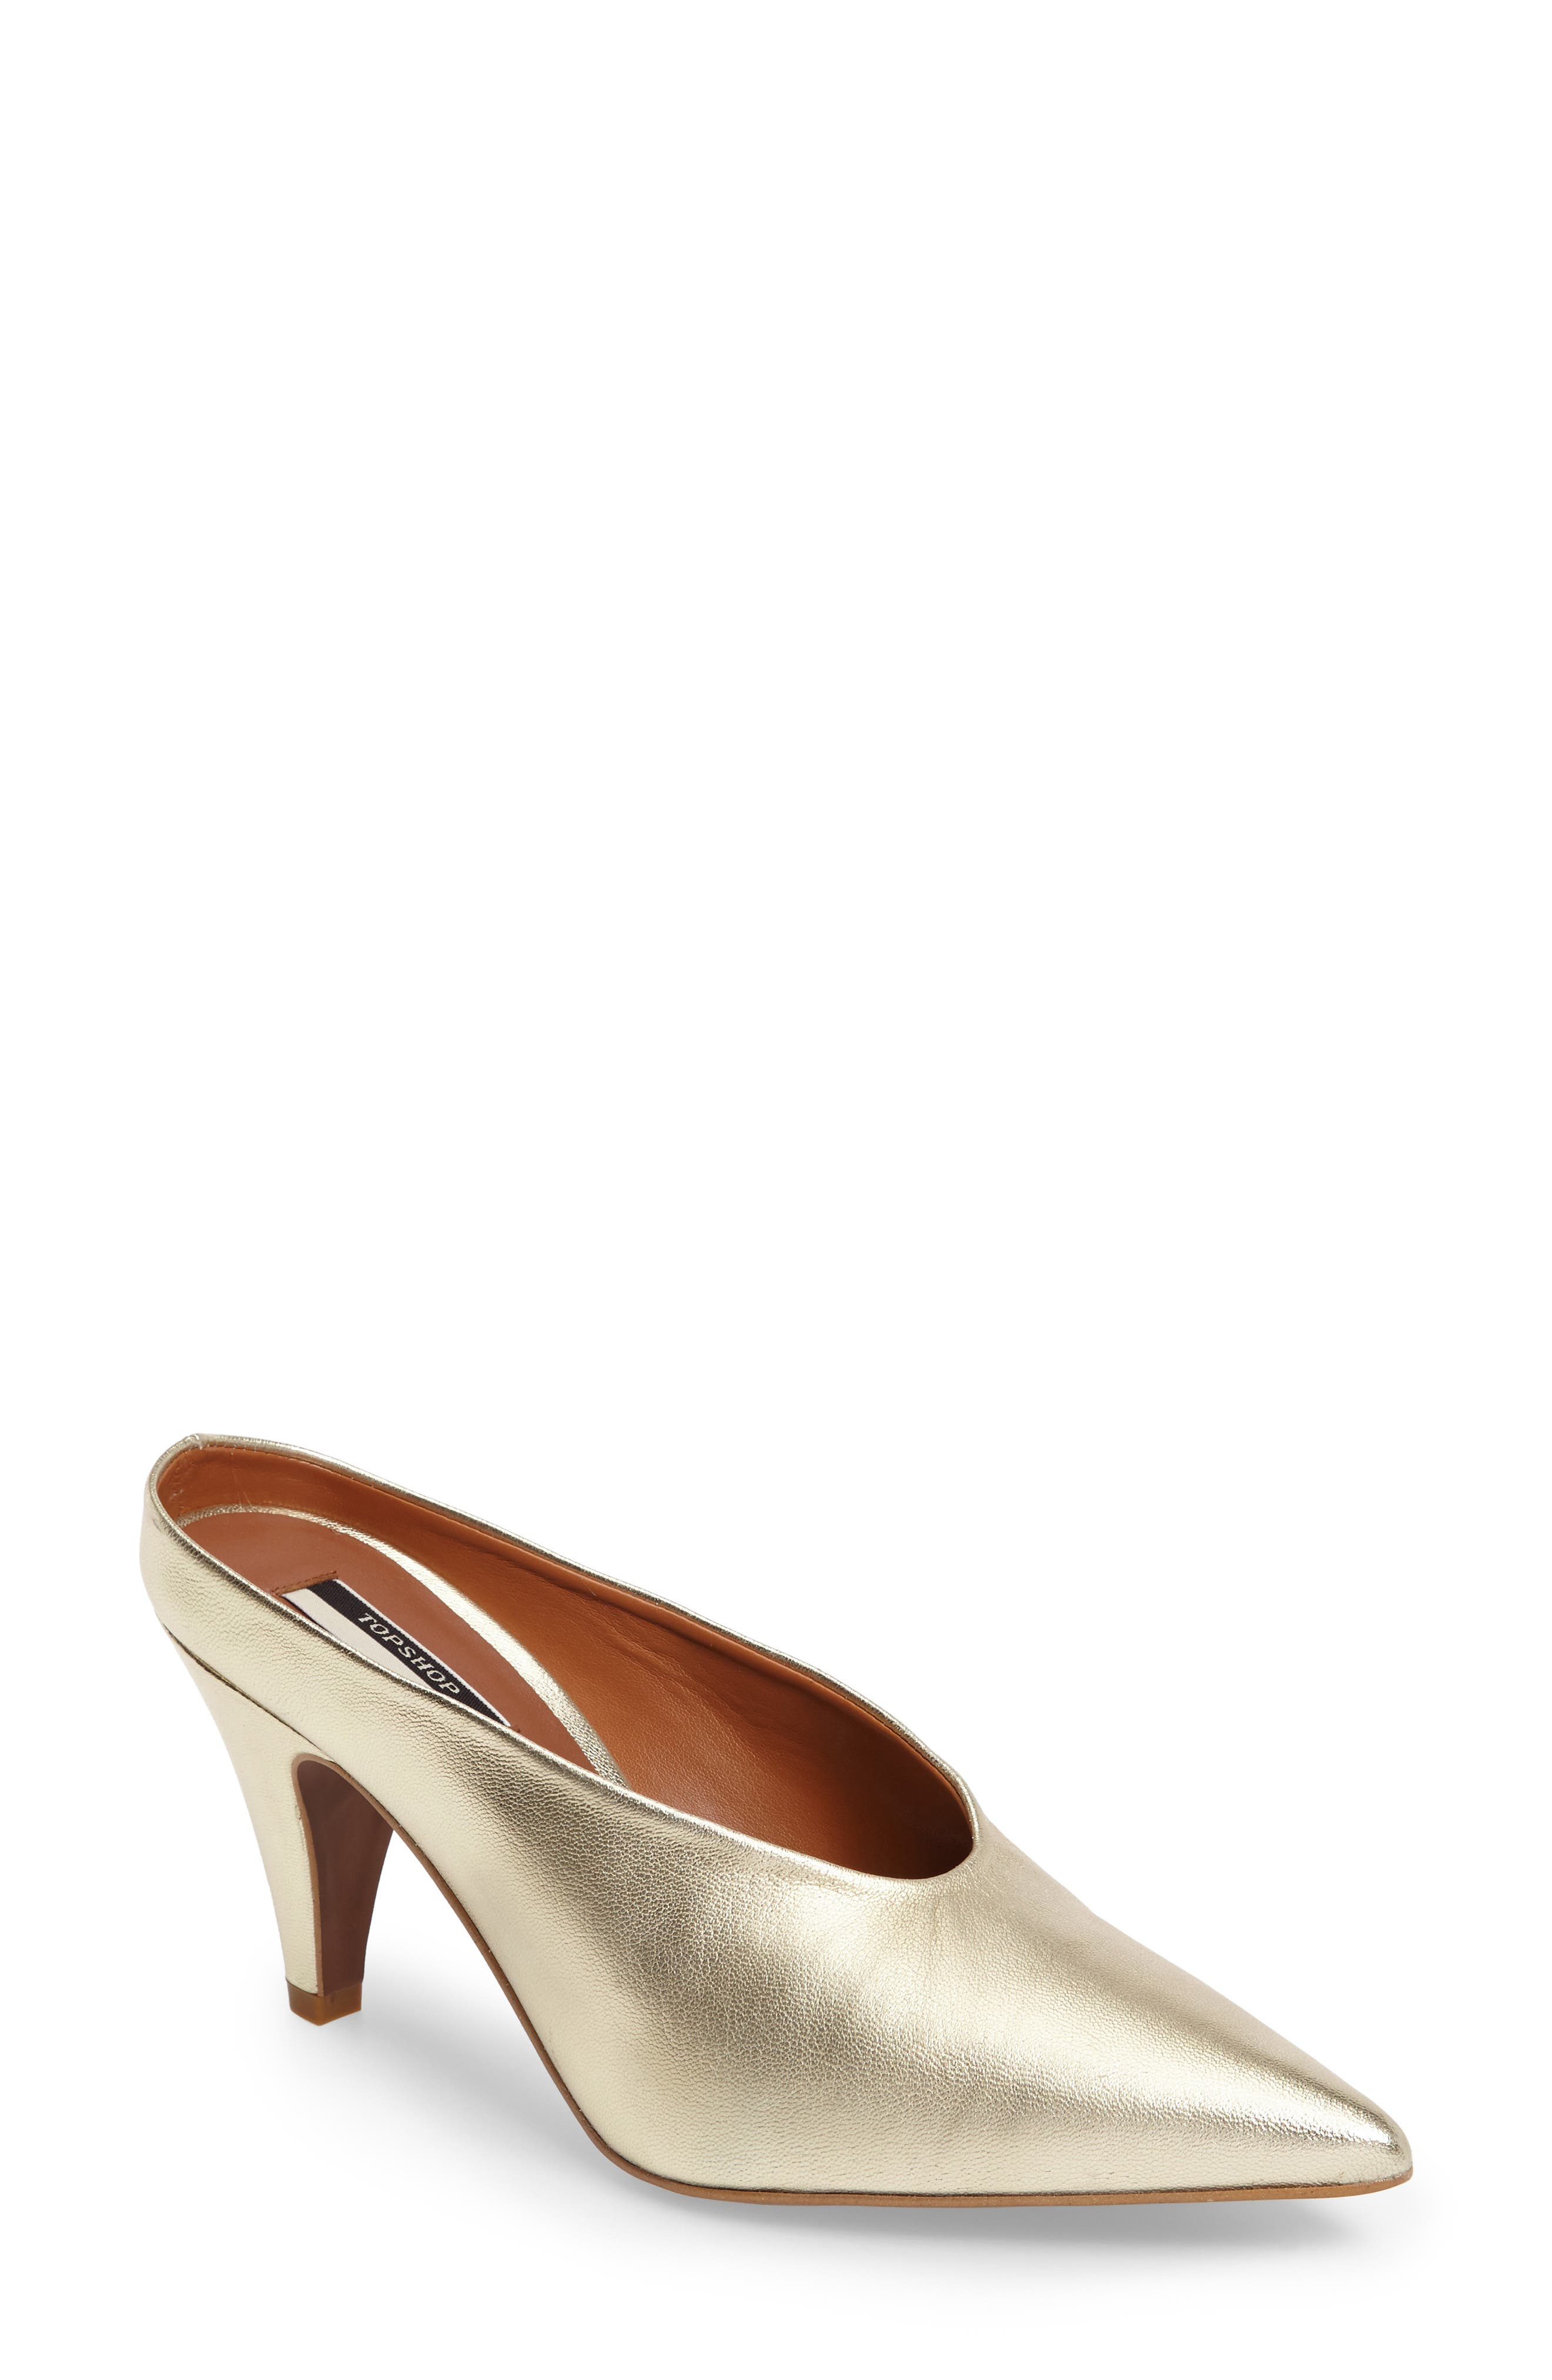 Juicy Pointy Toe Pump,                         Main,                         color, Gold Leather